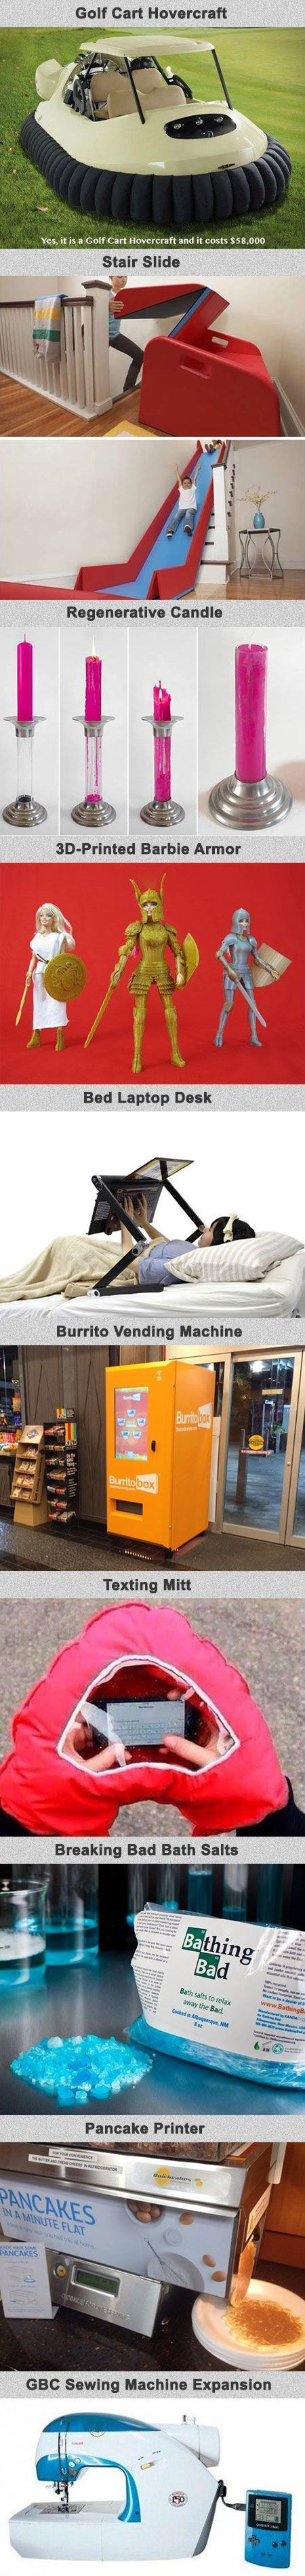 10 Bizarre Gadgets and Random Inventions You Won't Believe Exist - www.top-gadgets.xyz